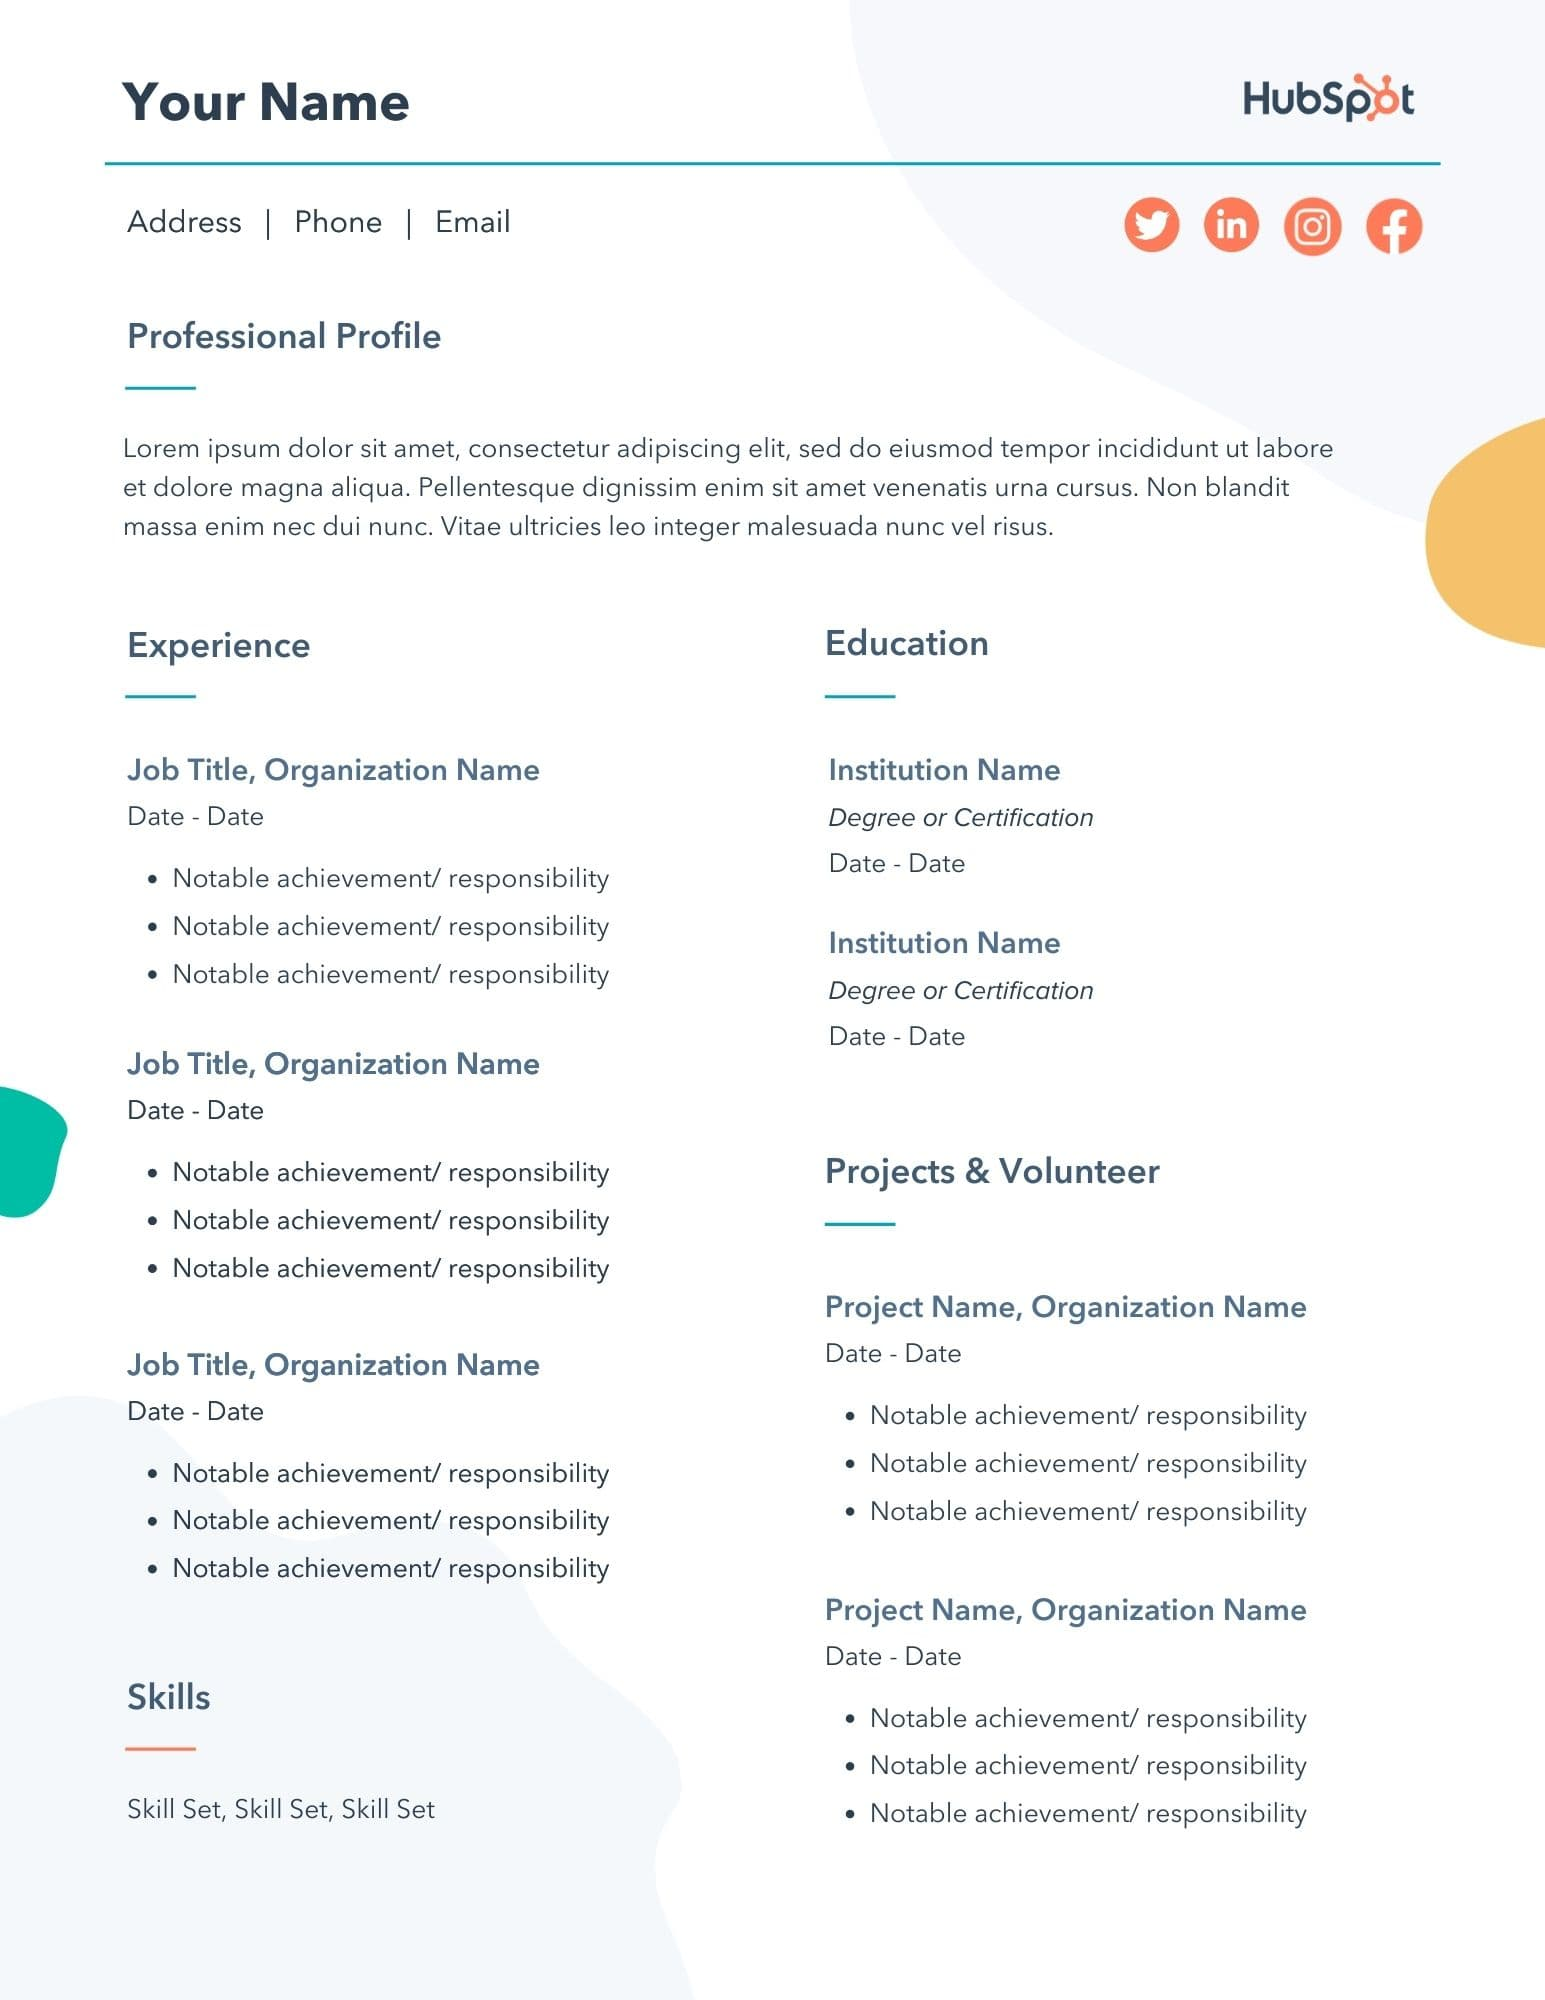 free resume templates for microsoft word to make your own one template with photo Resume One Page Resume Template With Photo Free Download